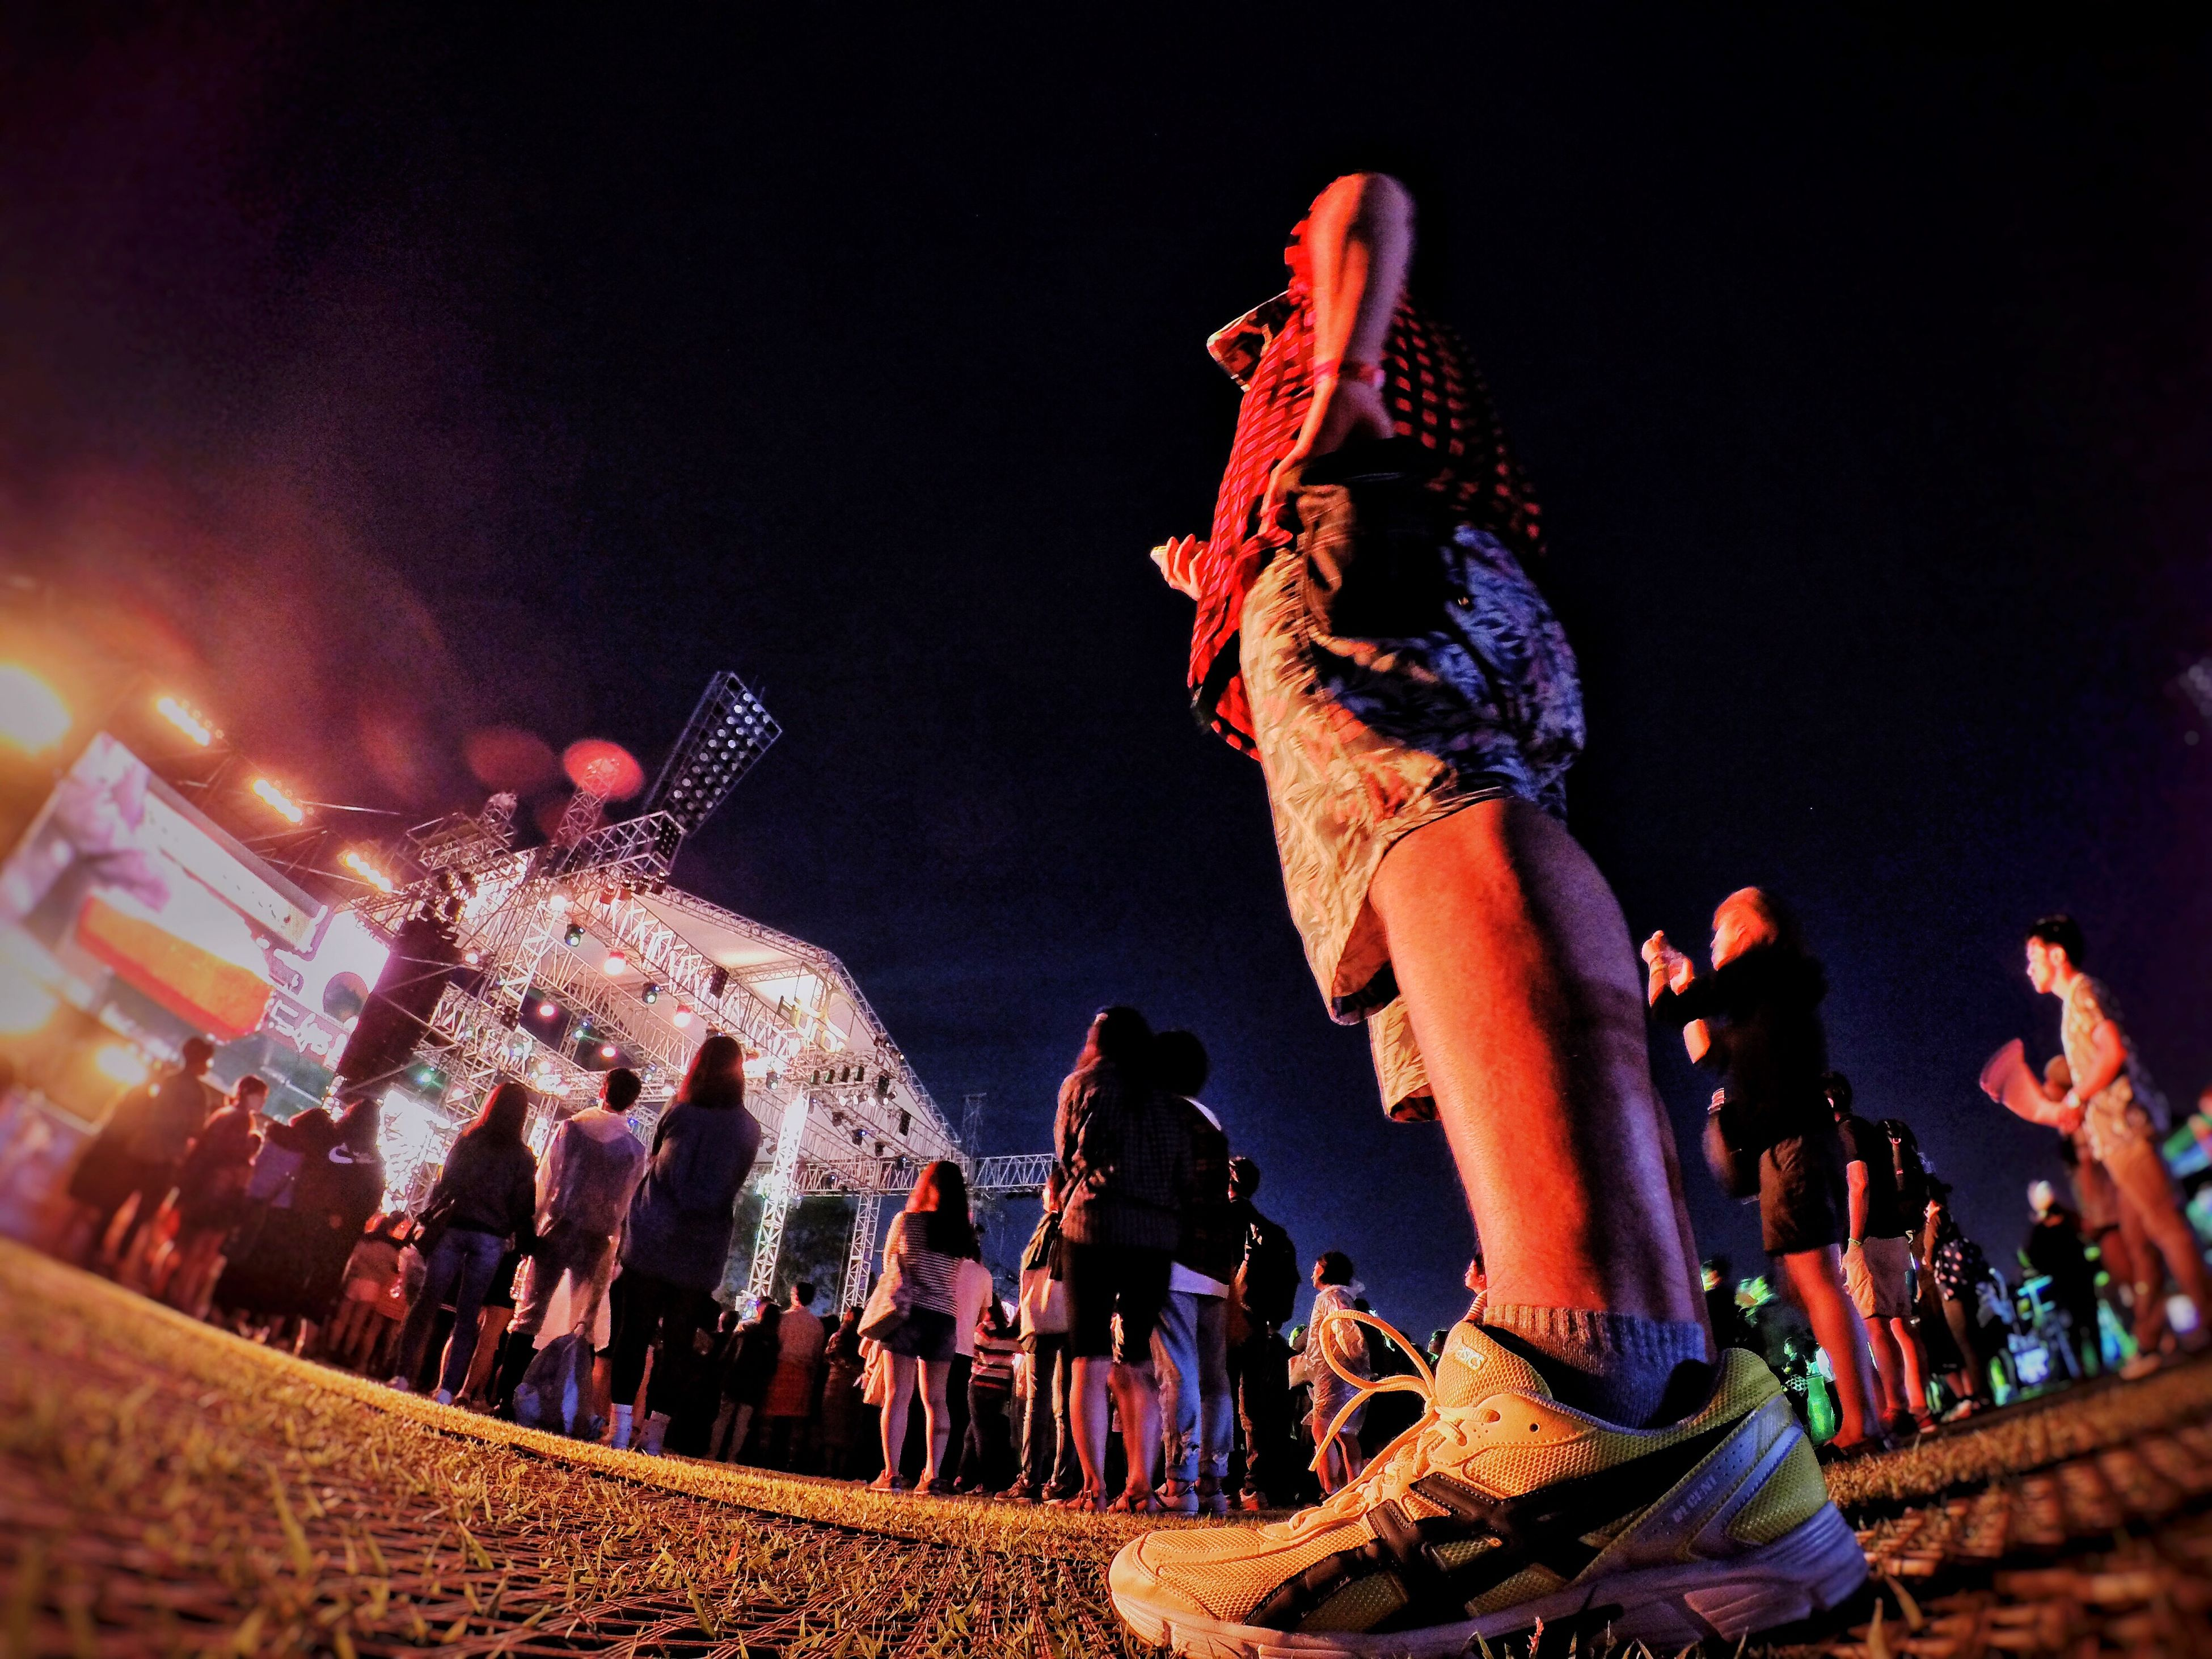 night, lifestyles, arts culture and entertainment, leisure activity, illuminated, men, large group of people, person, event, celebration, crowd, enjoyment, performance, music, fun, excitement, cultures, tradition, dancing